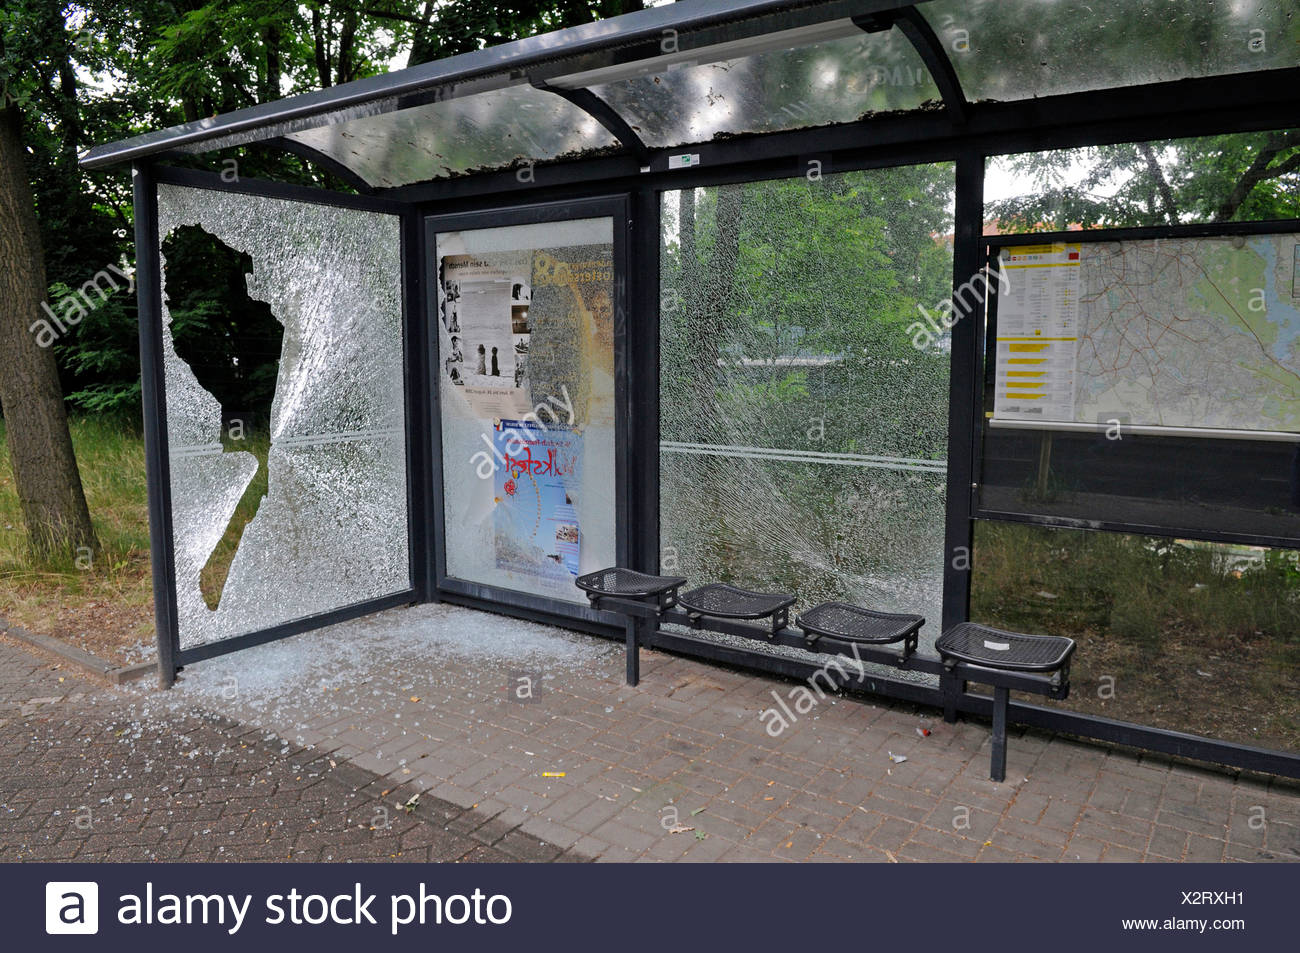 Vandalism on a bus stop Stock Photo